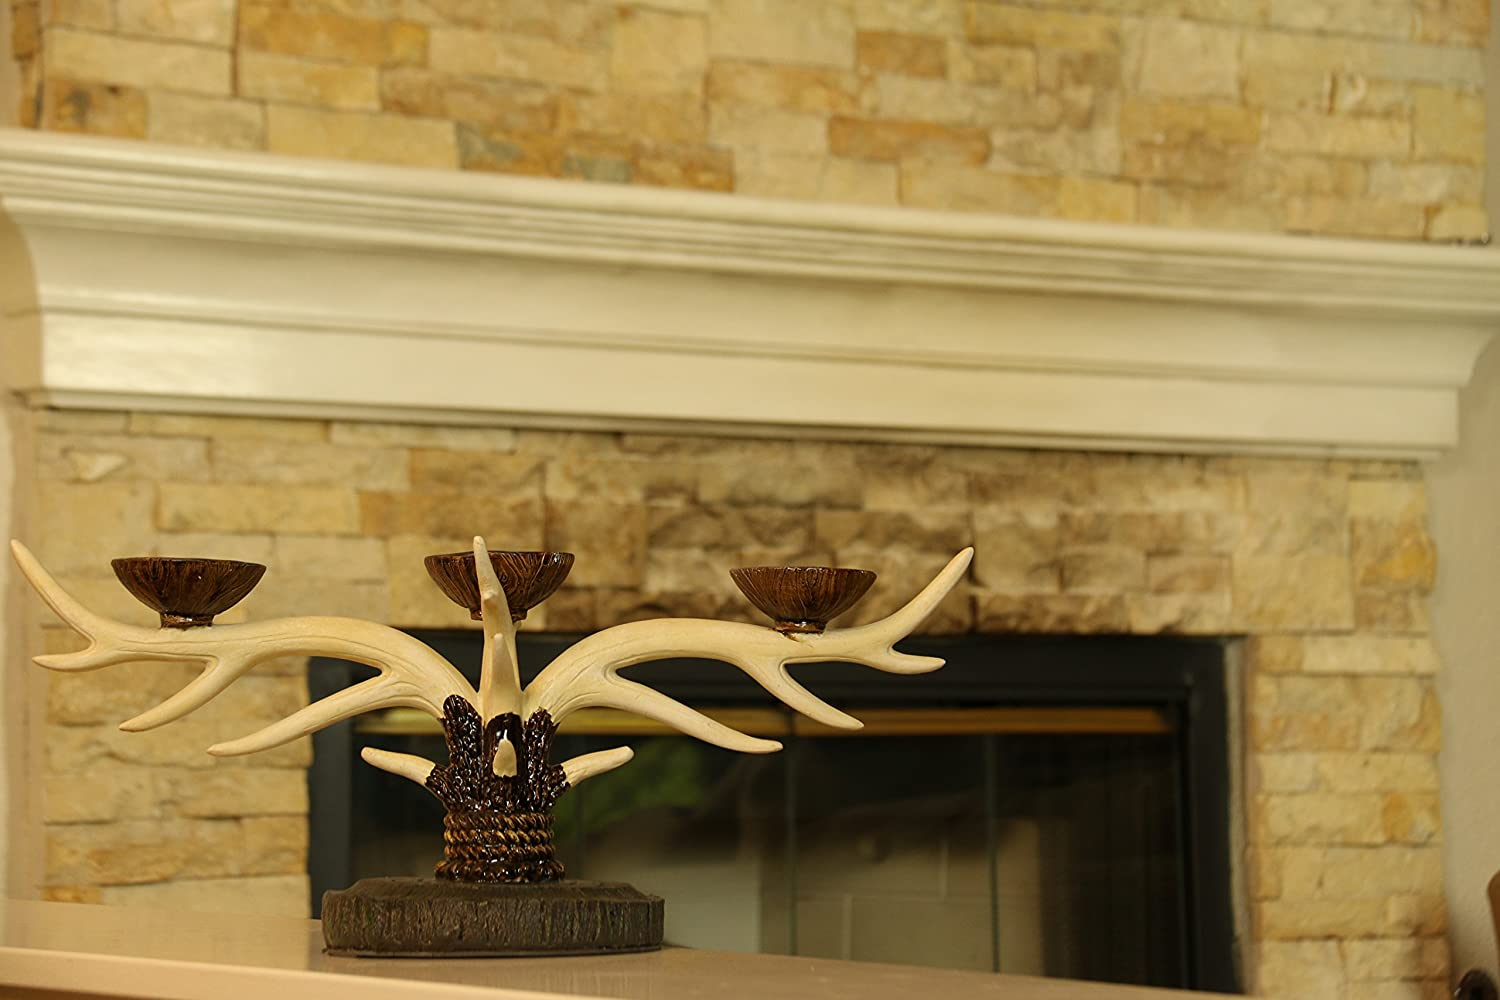 Amazon.com: Oh! Trendy™ Deer Antlers Vintage Candle Holder ...